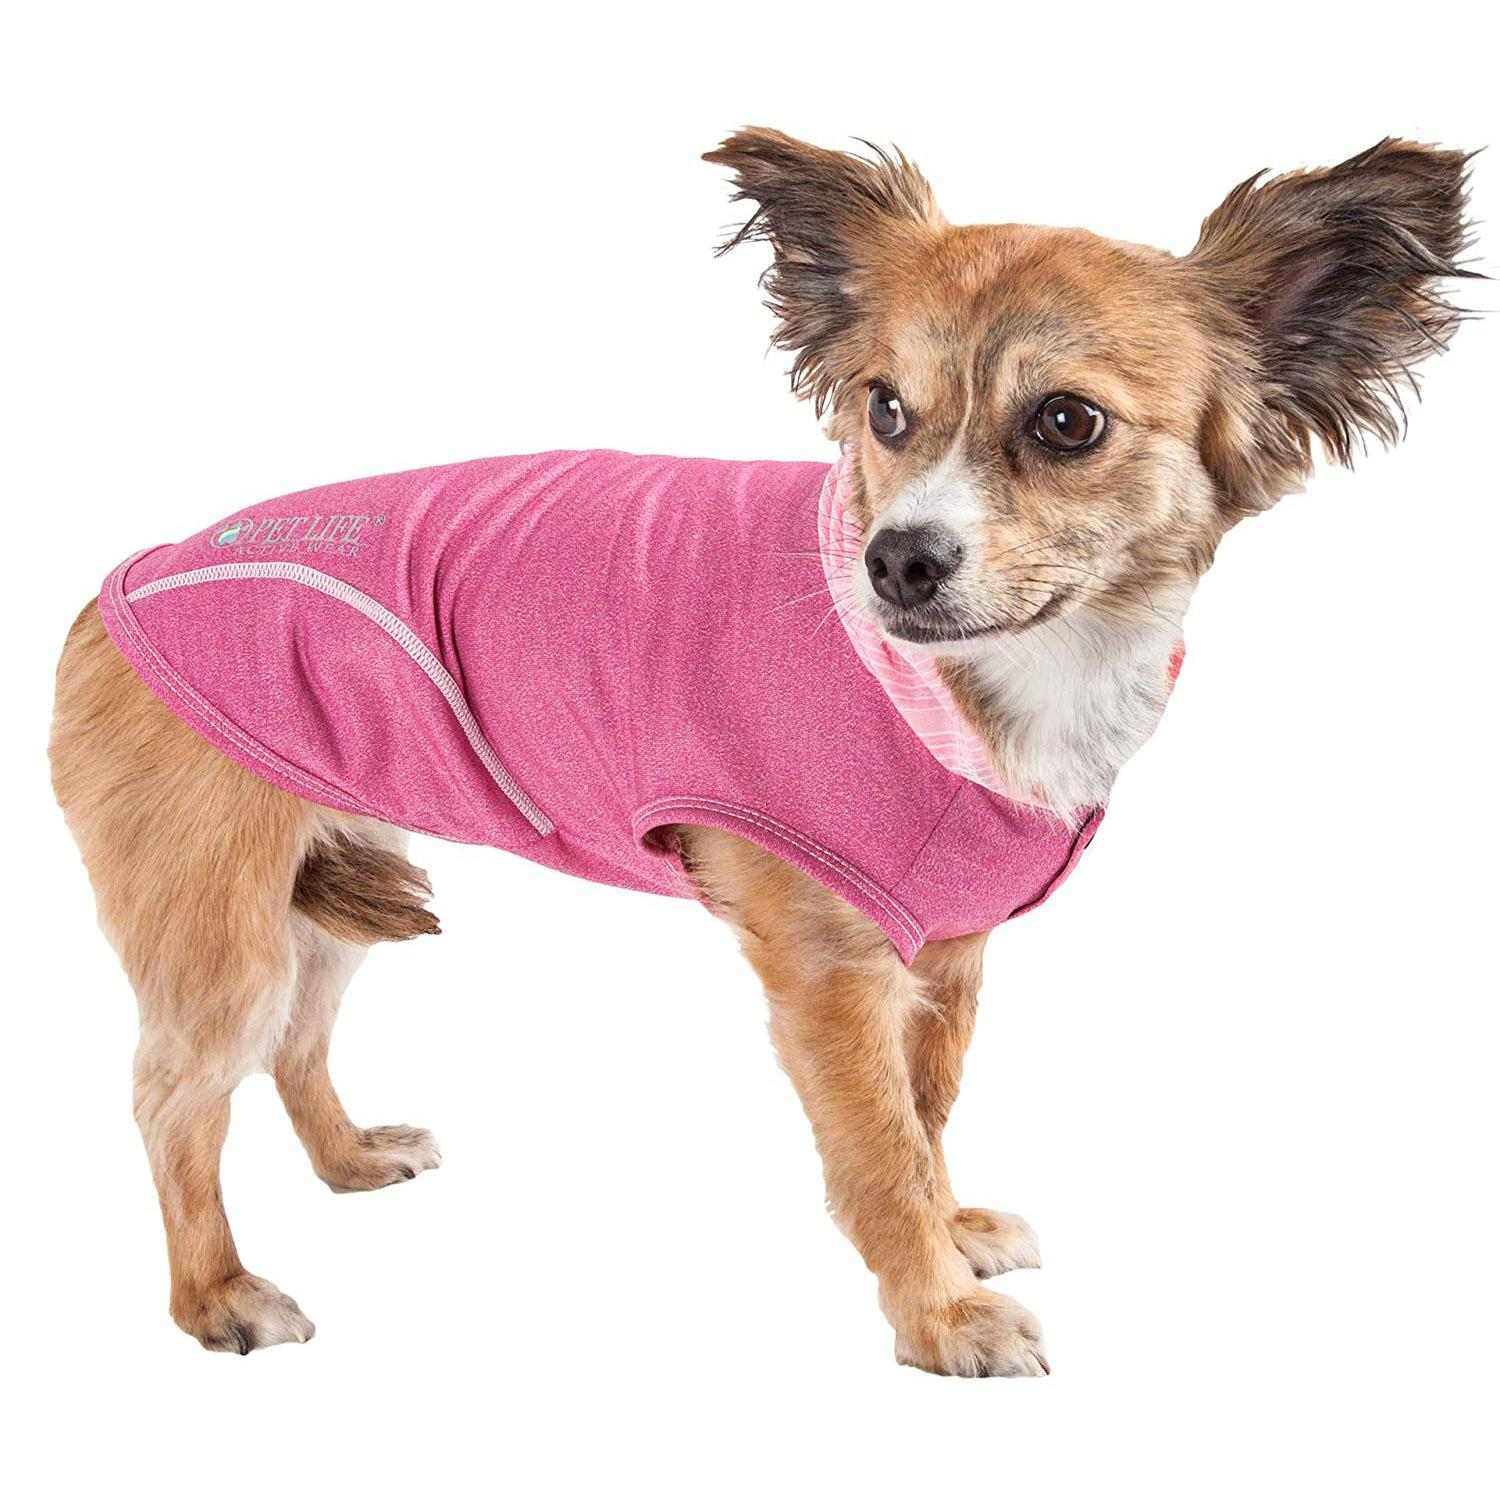 Pet Life ACTIVE 'Pull-Rover' Performance Sleeveless Dog Hoodie - Pink